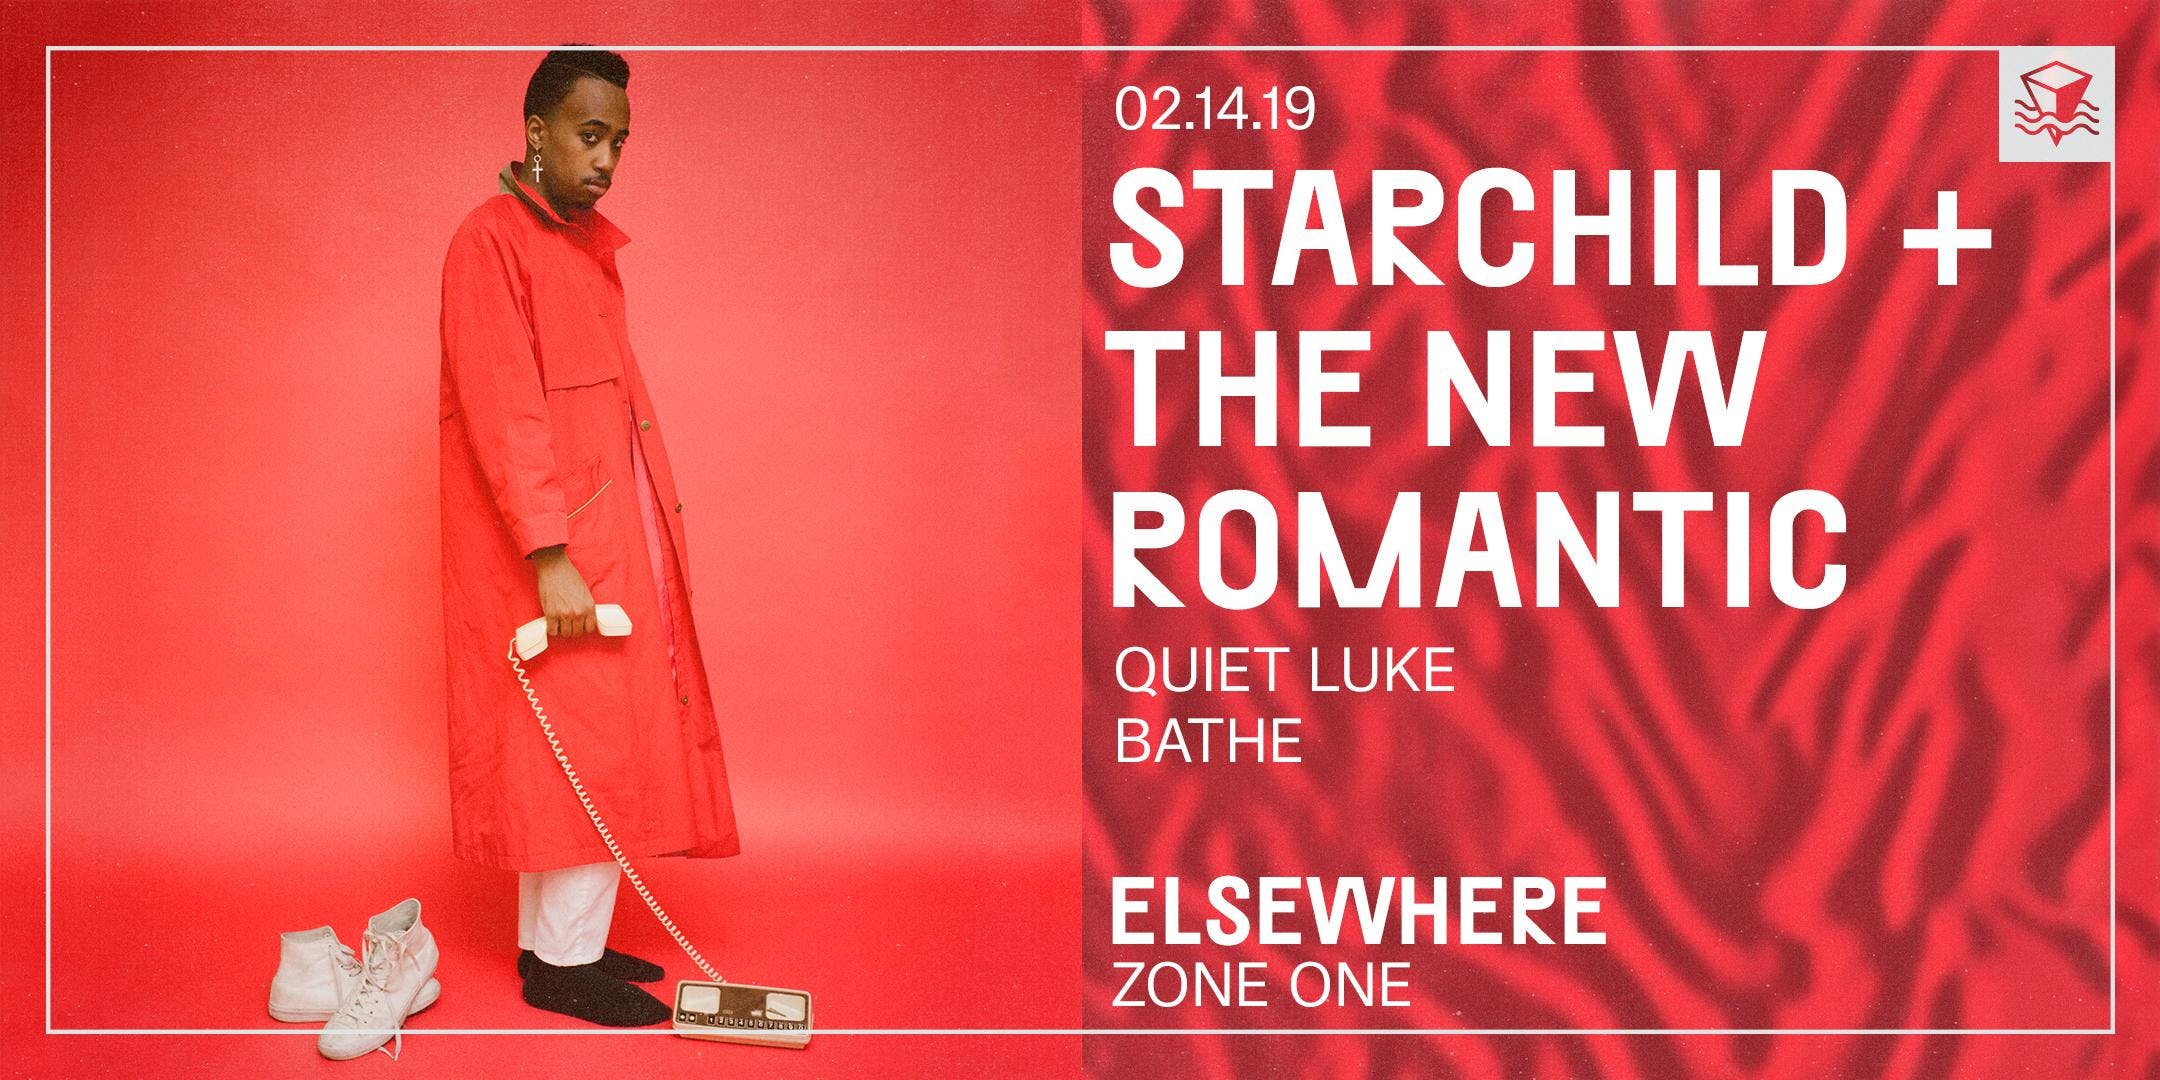 Valentine's Day with Starchild & The New Romantic